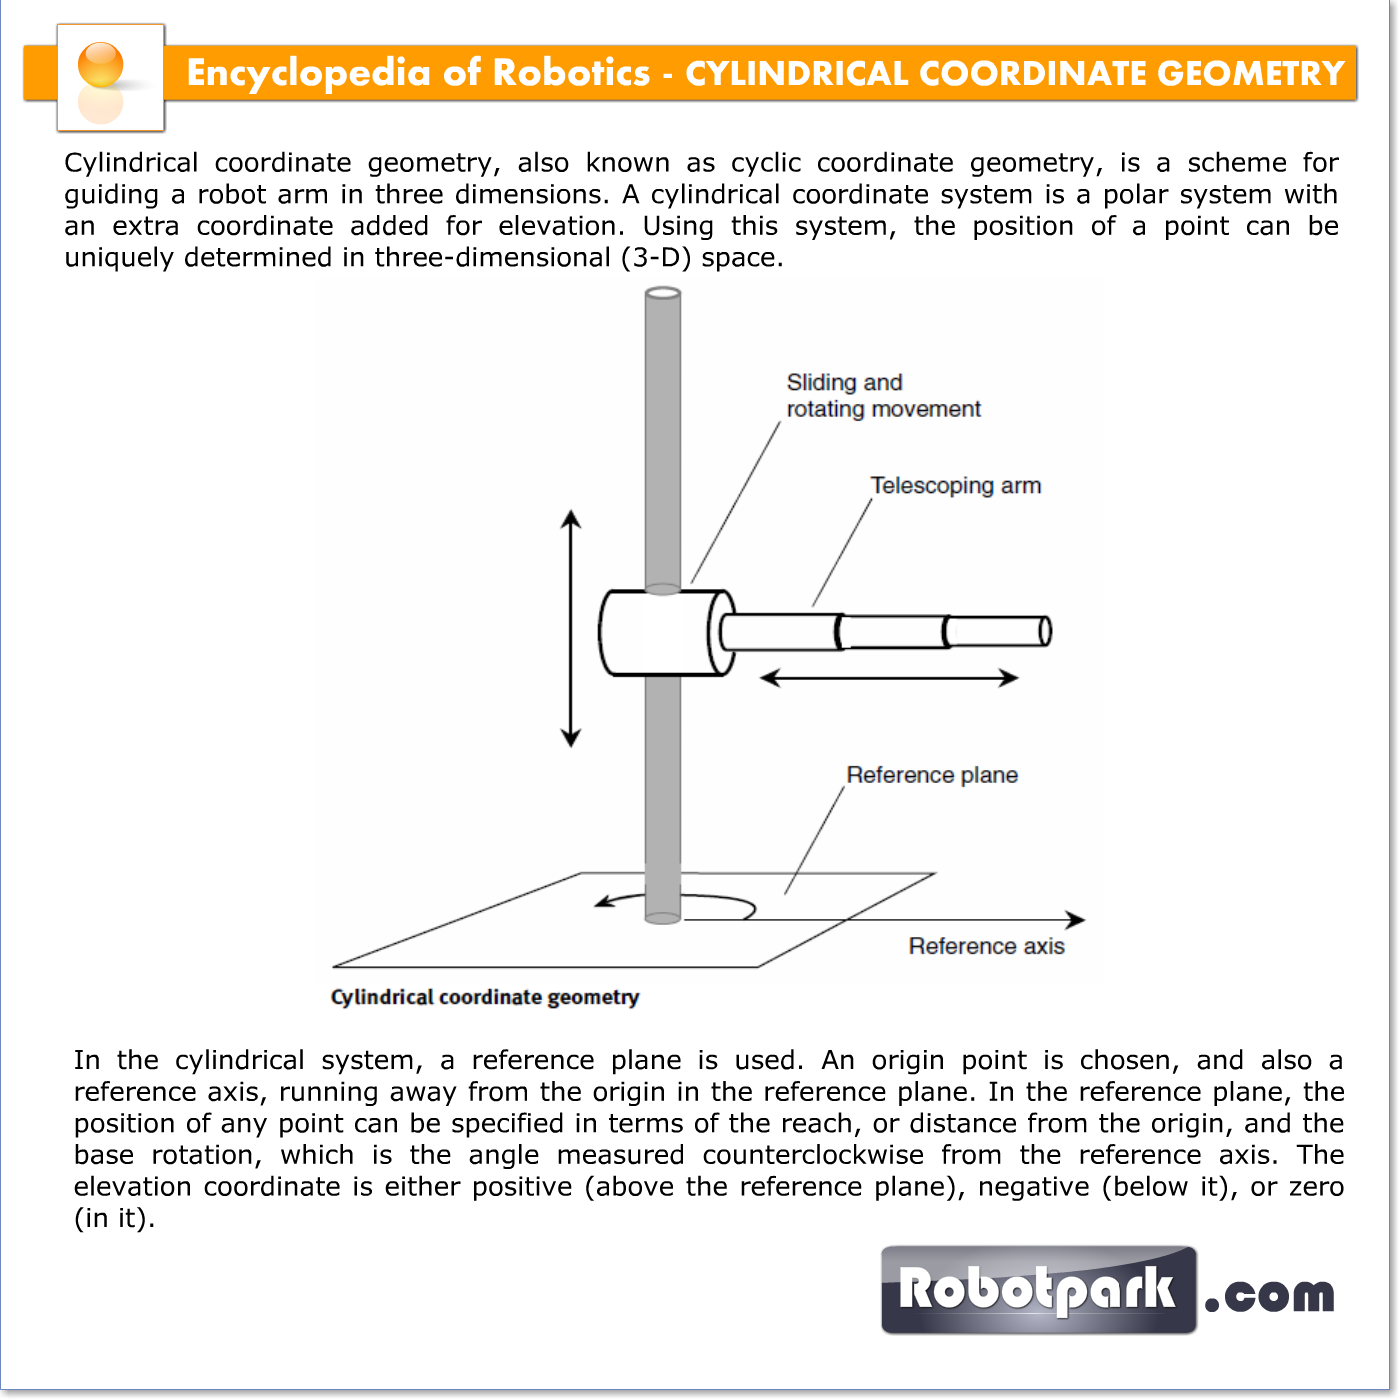 Cylindrical coordinate geometry 21037 robotpark academy a cylindrical coordinate system is a polar system with an extra coordinate added for elevation using this system the position of a point can be uniquely ccuart Images